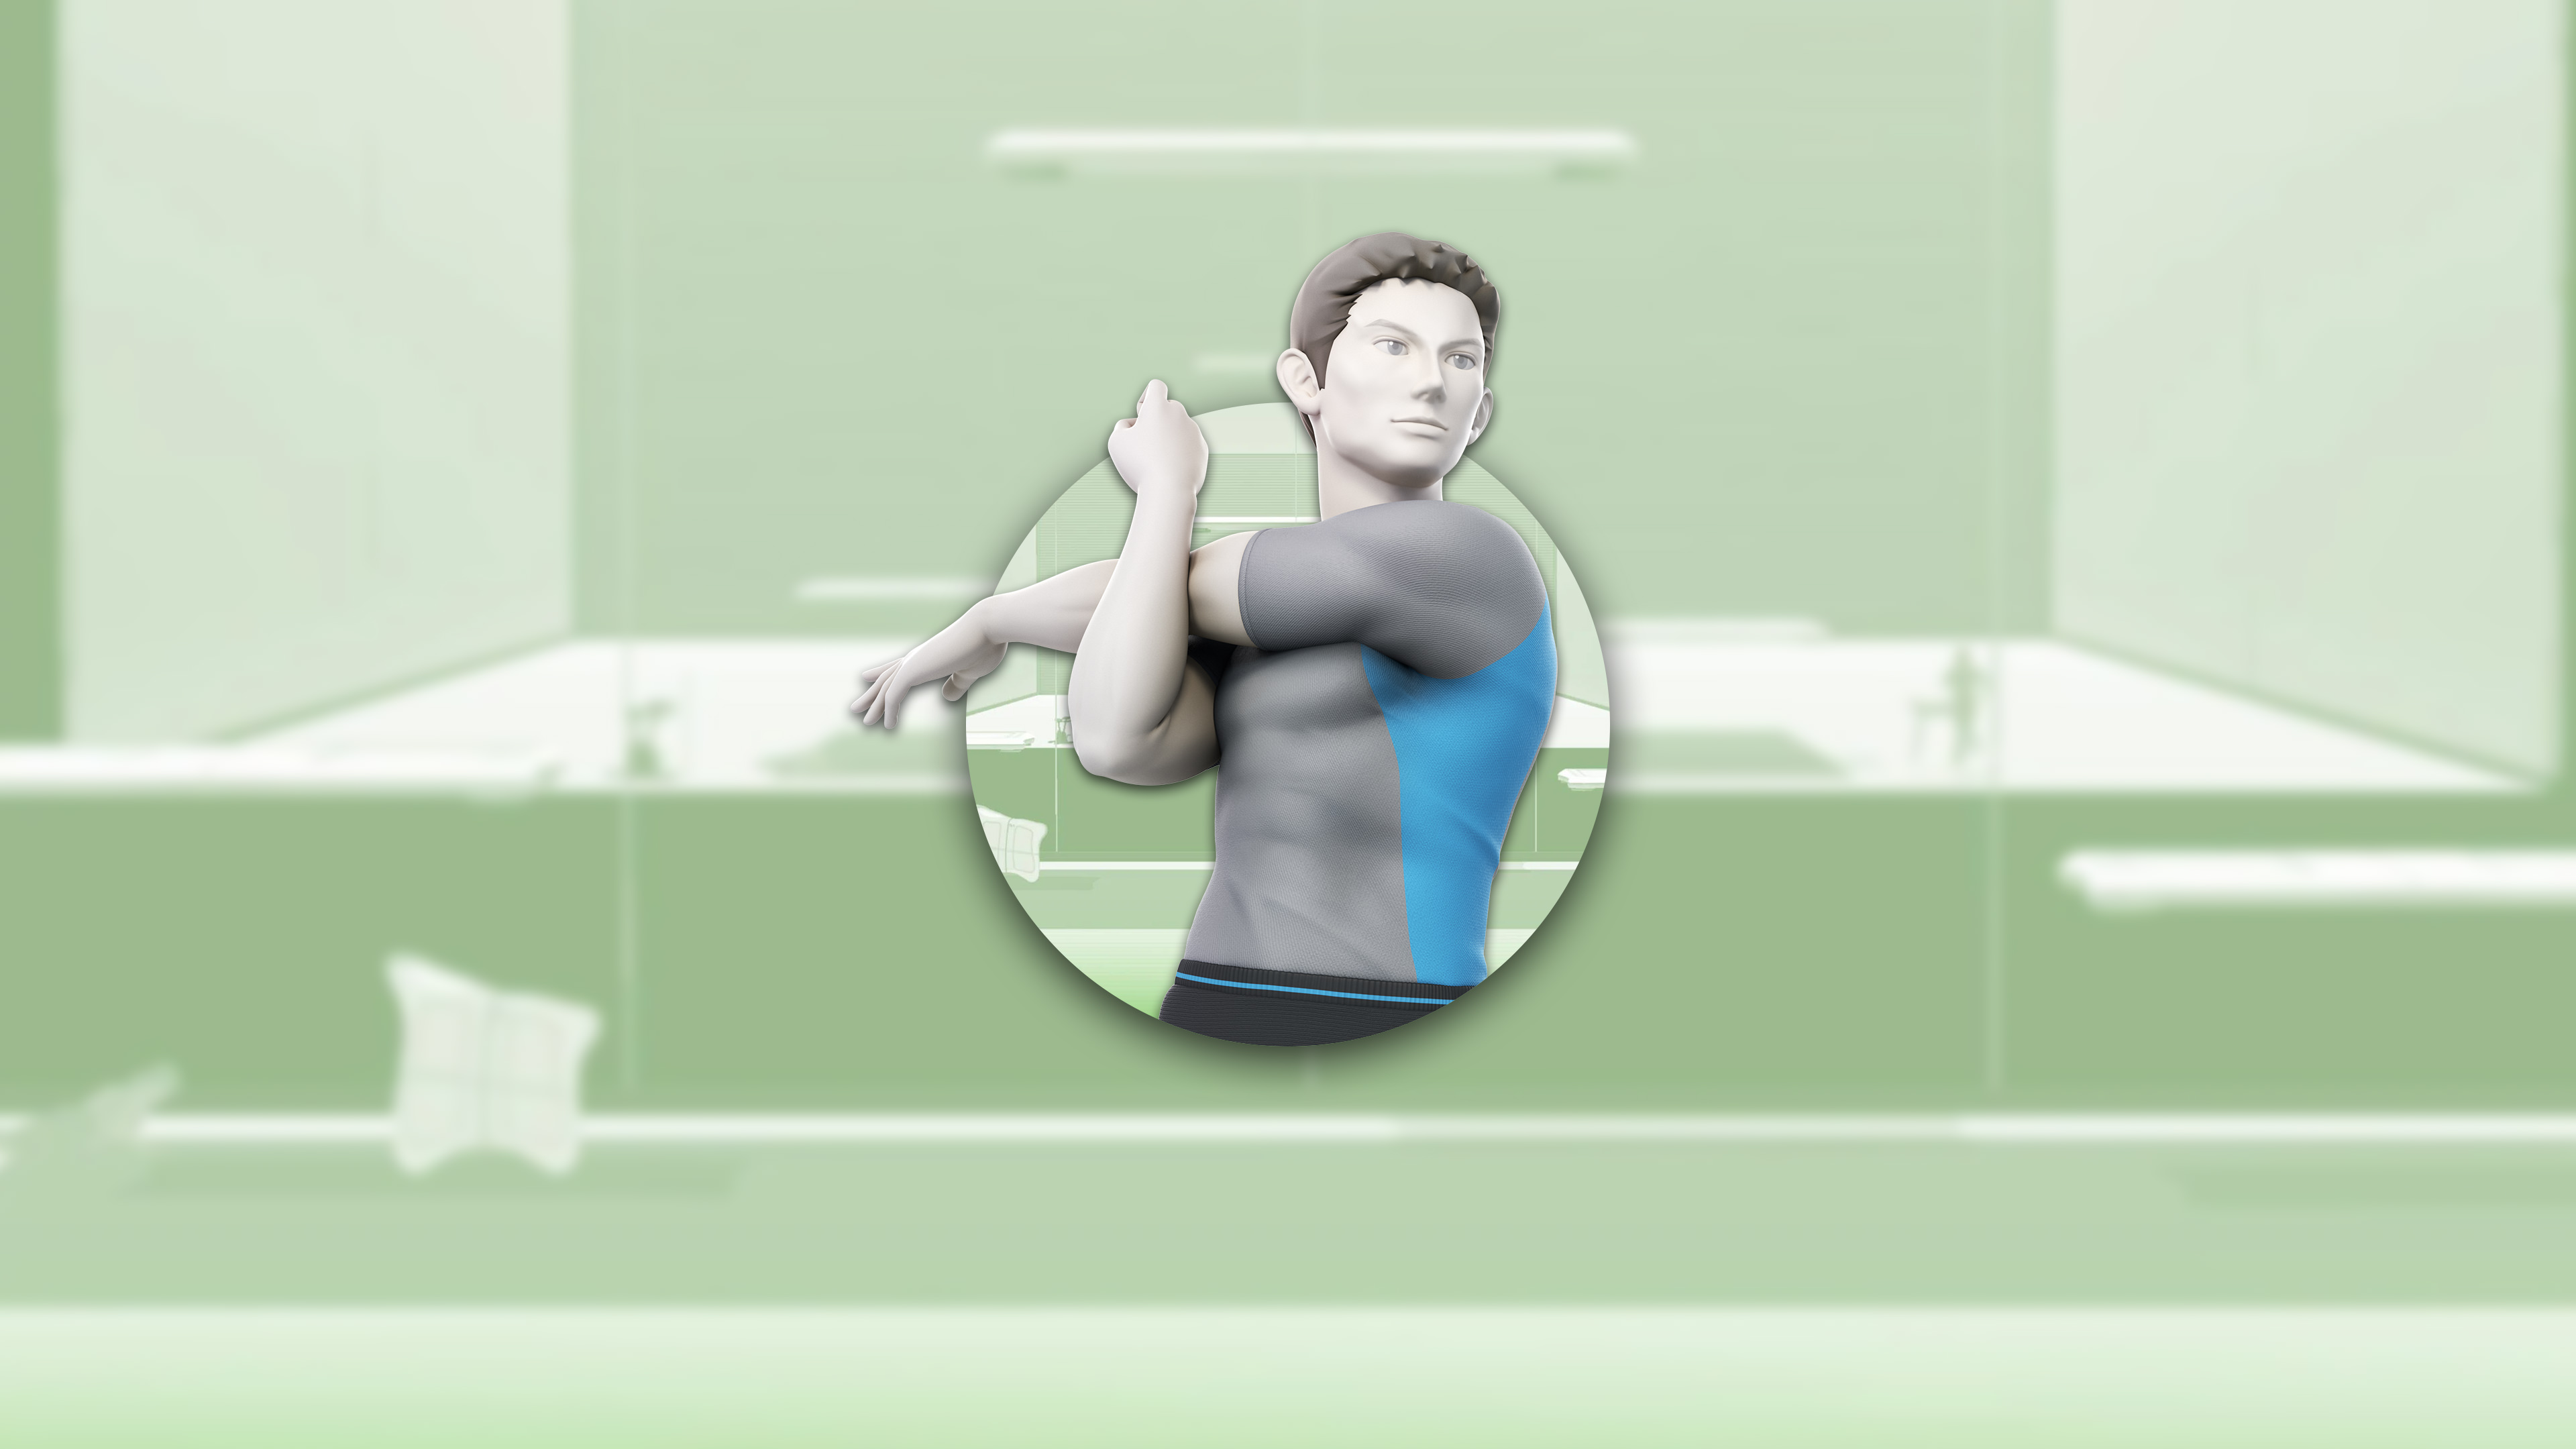 super smash bros ultimate wii fit trainer male uhd 4k wallpaper